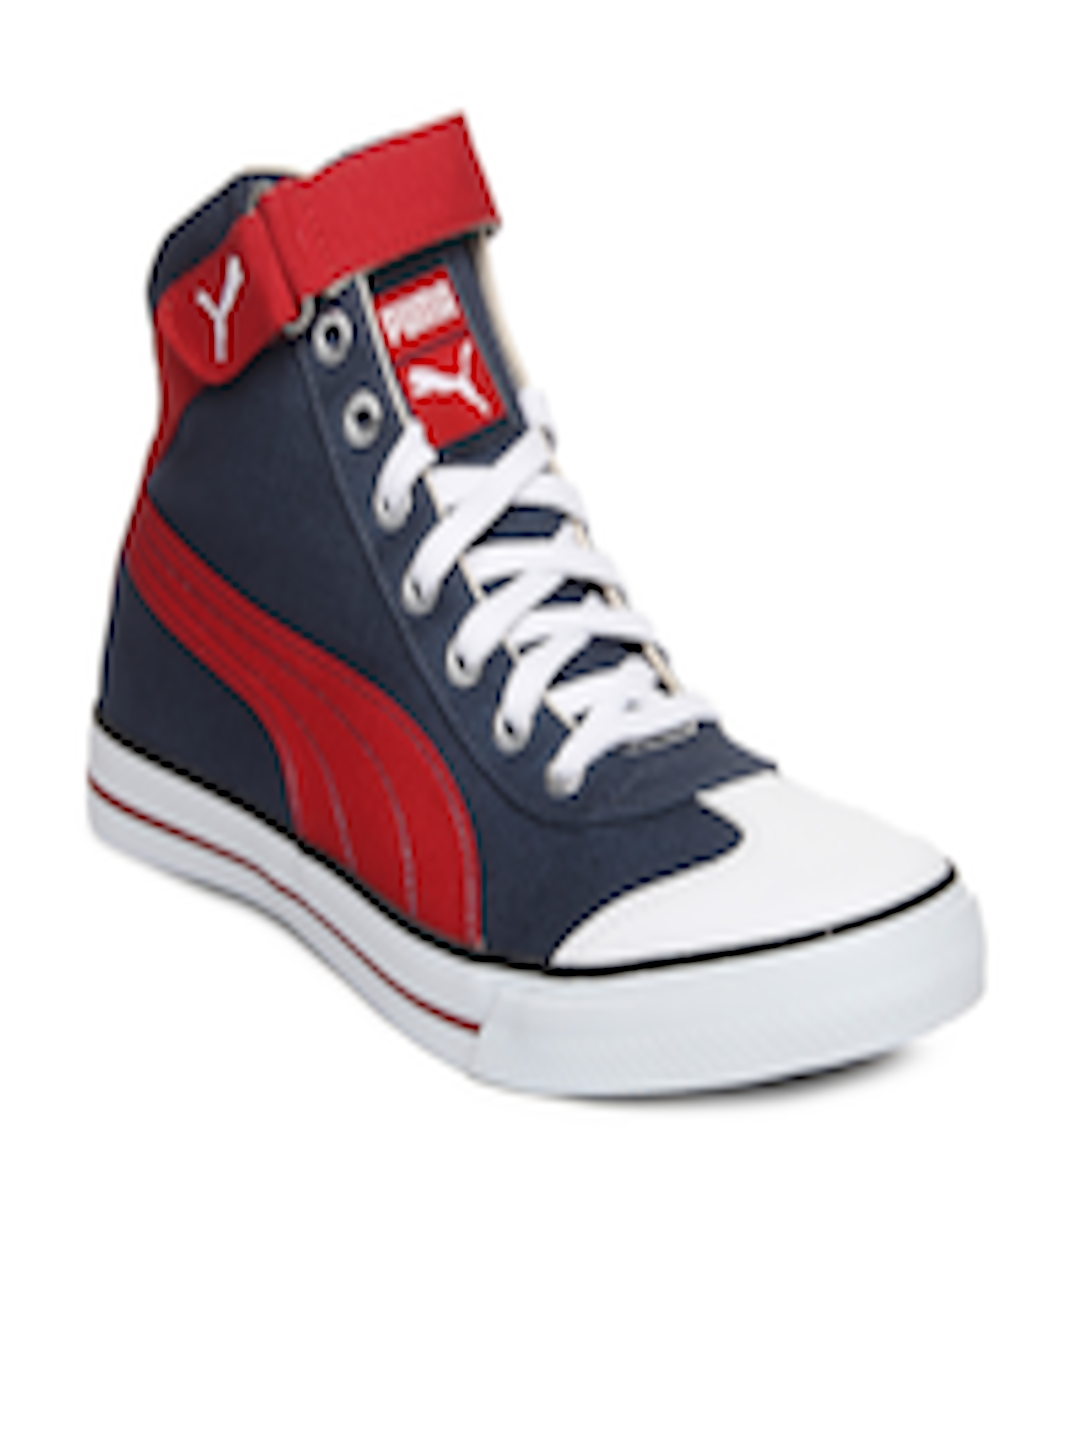 5d3917384004ba Buy Puma Unisex Blue   Red 917 Mid 2.0 Ind. Casual Shoes - Casual Shoes for  Unisex 171396